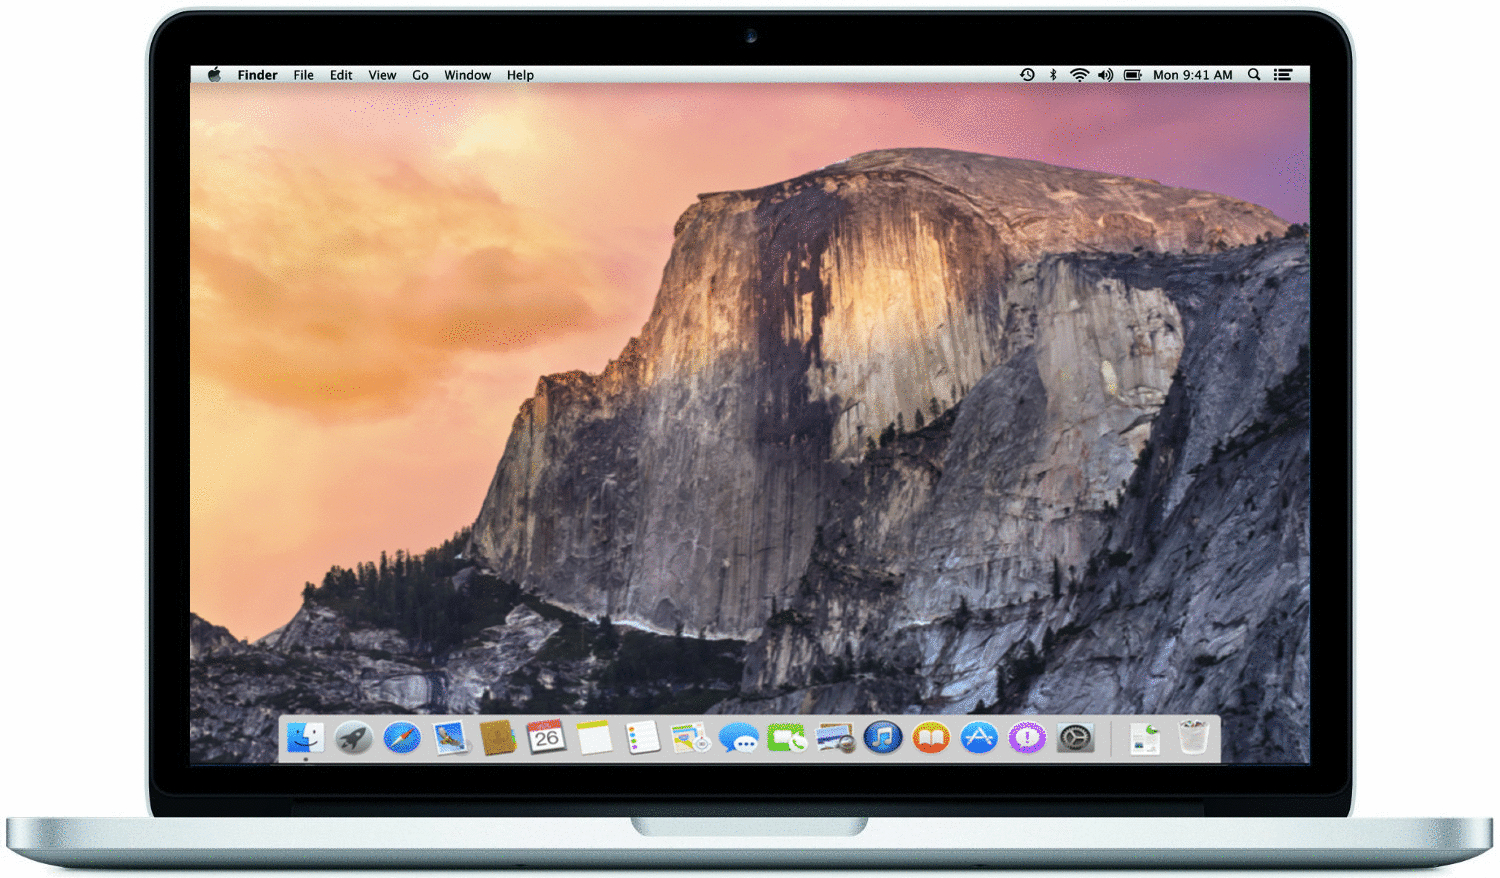 Apple MacBook Pro CTO 13.3 (Retina Display) 2.7 GHz Intel Core i5 16 GB RAM 128 GB PCIe SSD [Early 2015]